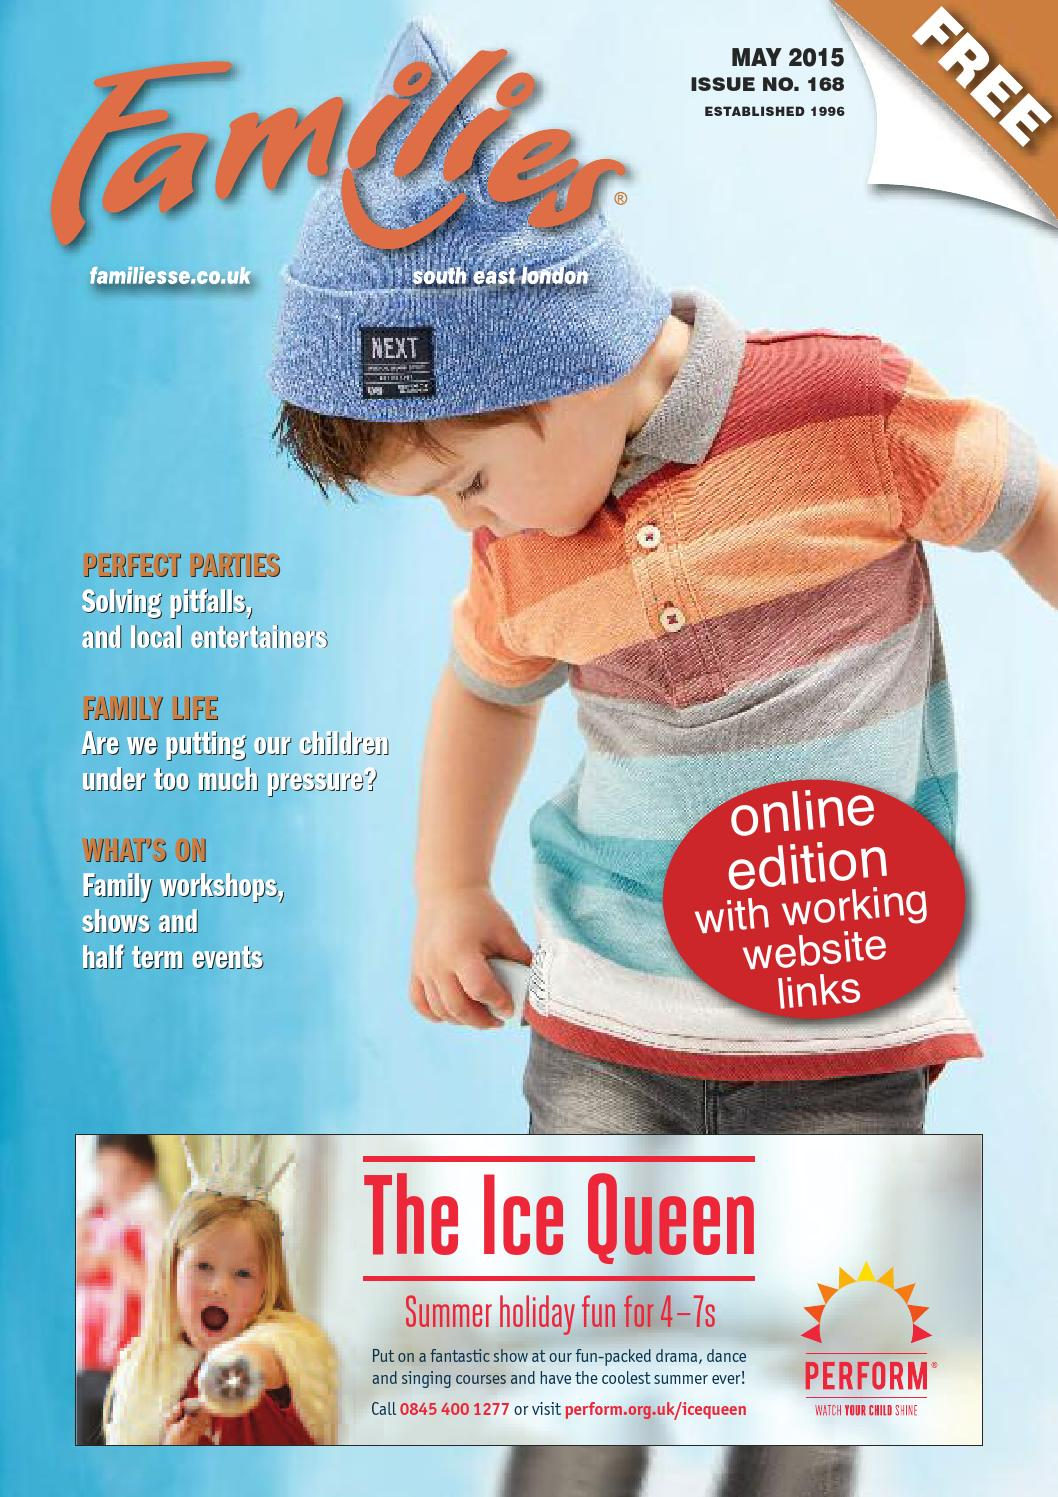 Families London SE May 2015 issue 168 by Families Magazine - issuu